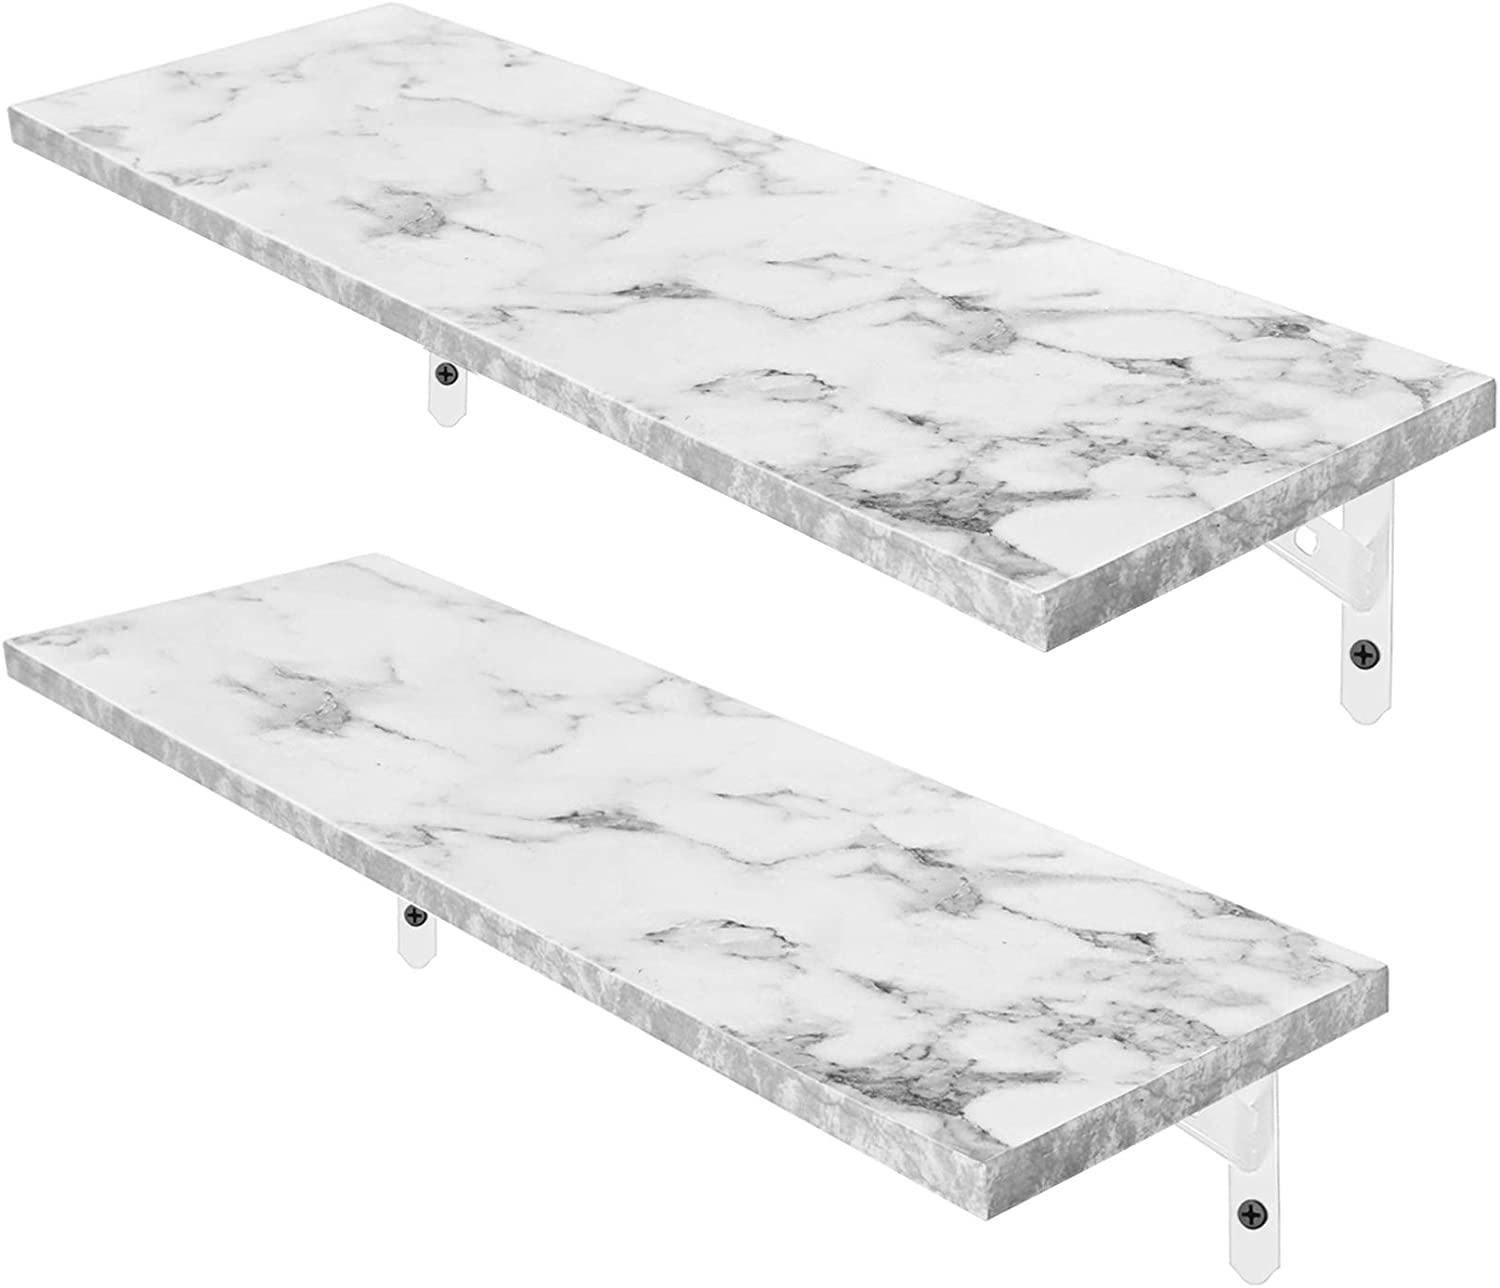 Magicfly Wall Mounted Marble Floating Shelves, Waterproof Long White Wood Shelf, Display Ledge Large Storage Shelves for Bedroom, Bathroom, Kitchen, Home Décor, Set of 2